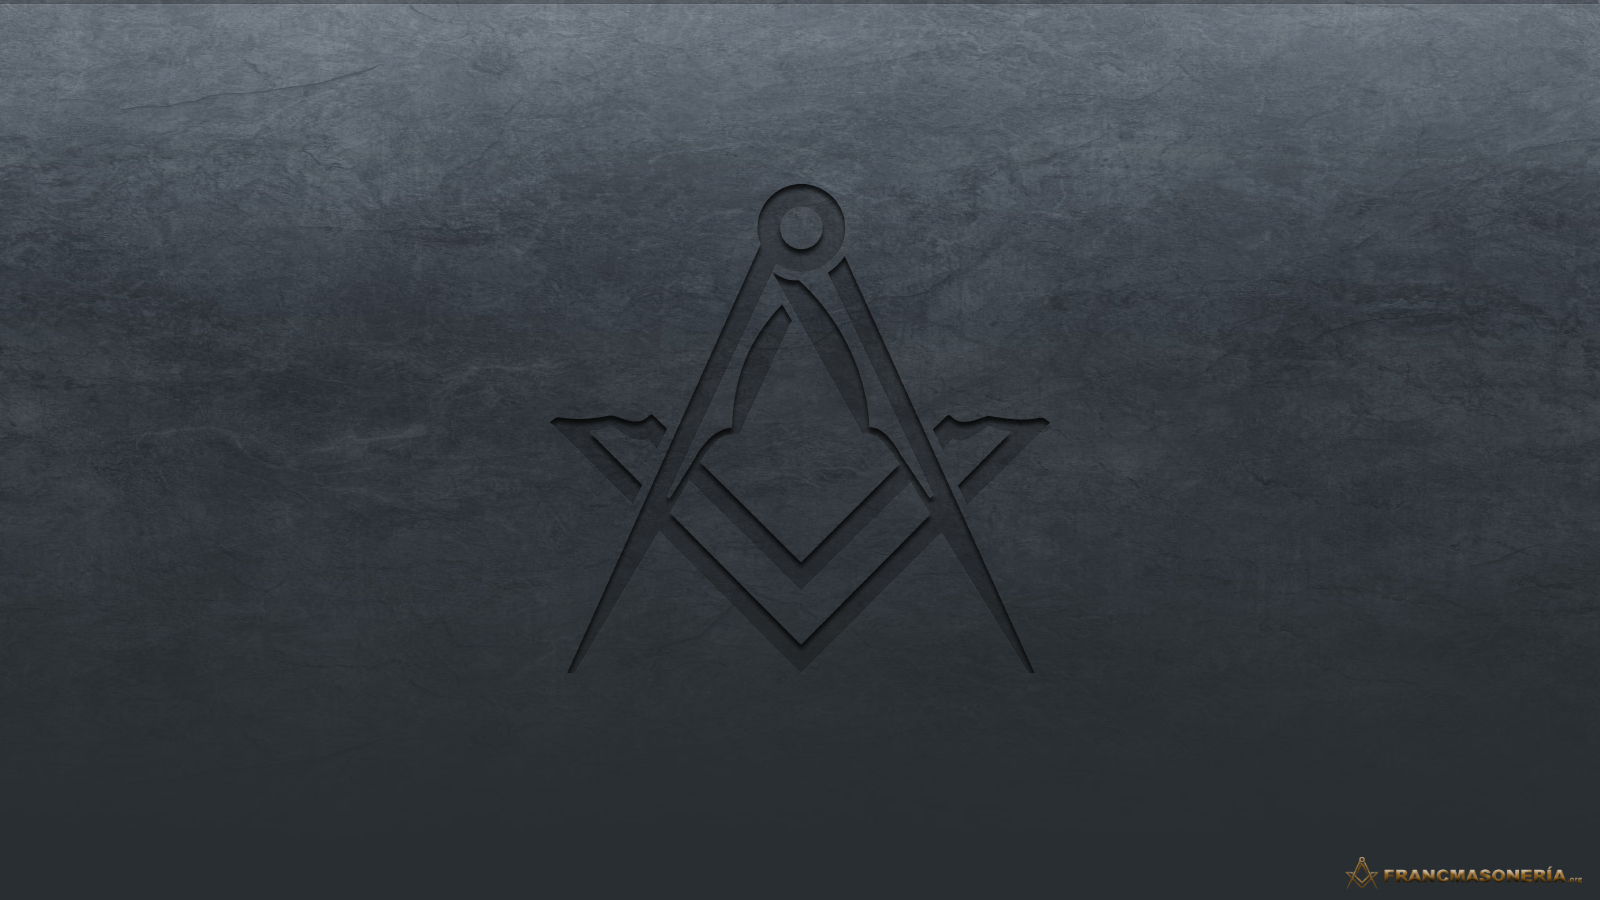 Masonic Wallpaper For Iphone Release date Specs Review Redesign 1600x900